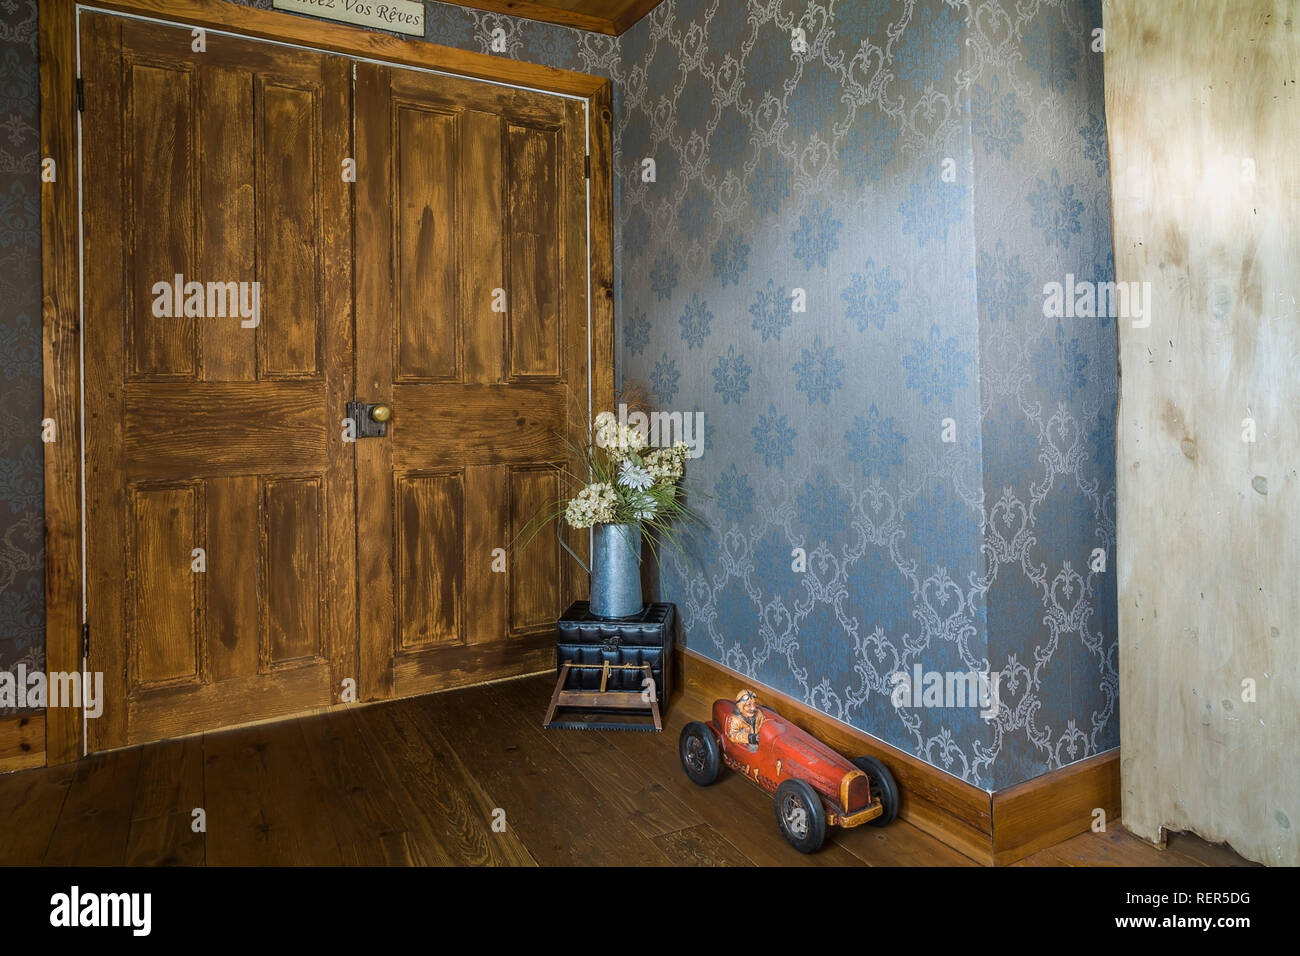 Galvanized watering can with cut flowers and red toy racing car next to brown stained wooden doors in living room inside old 1839 home - Stock Image